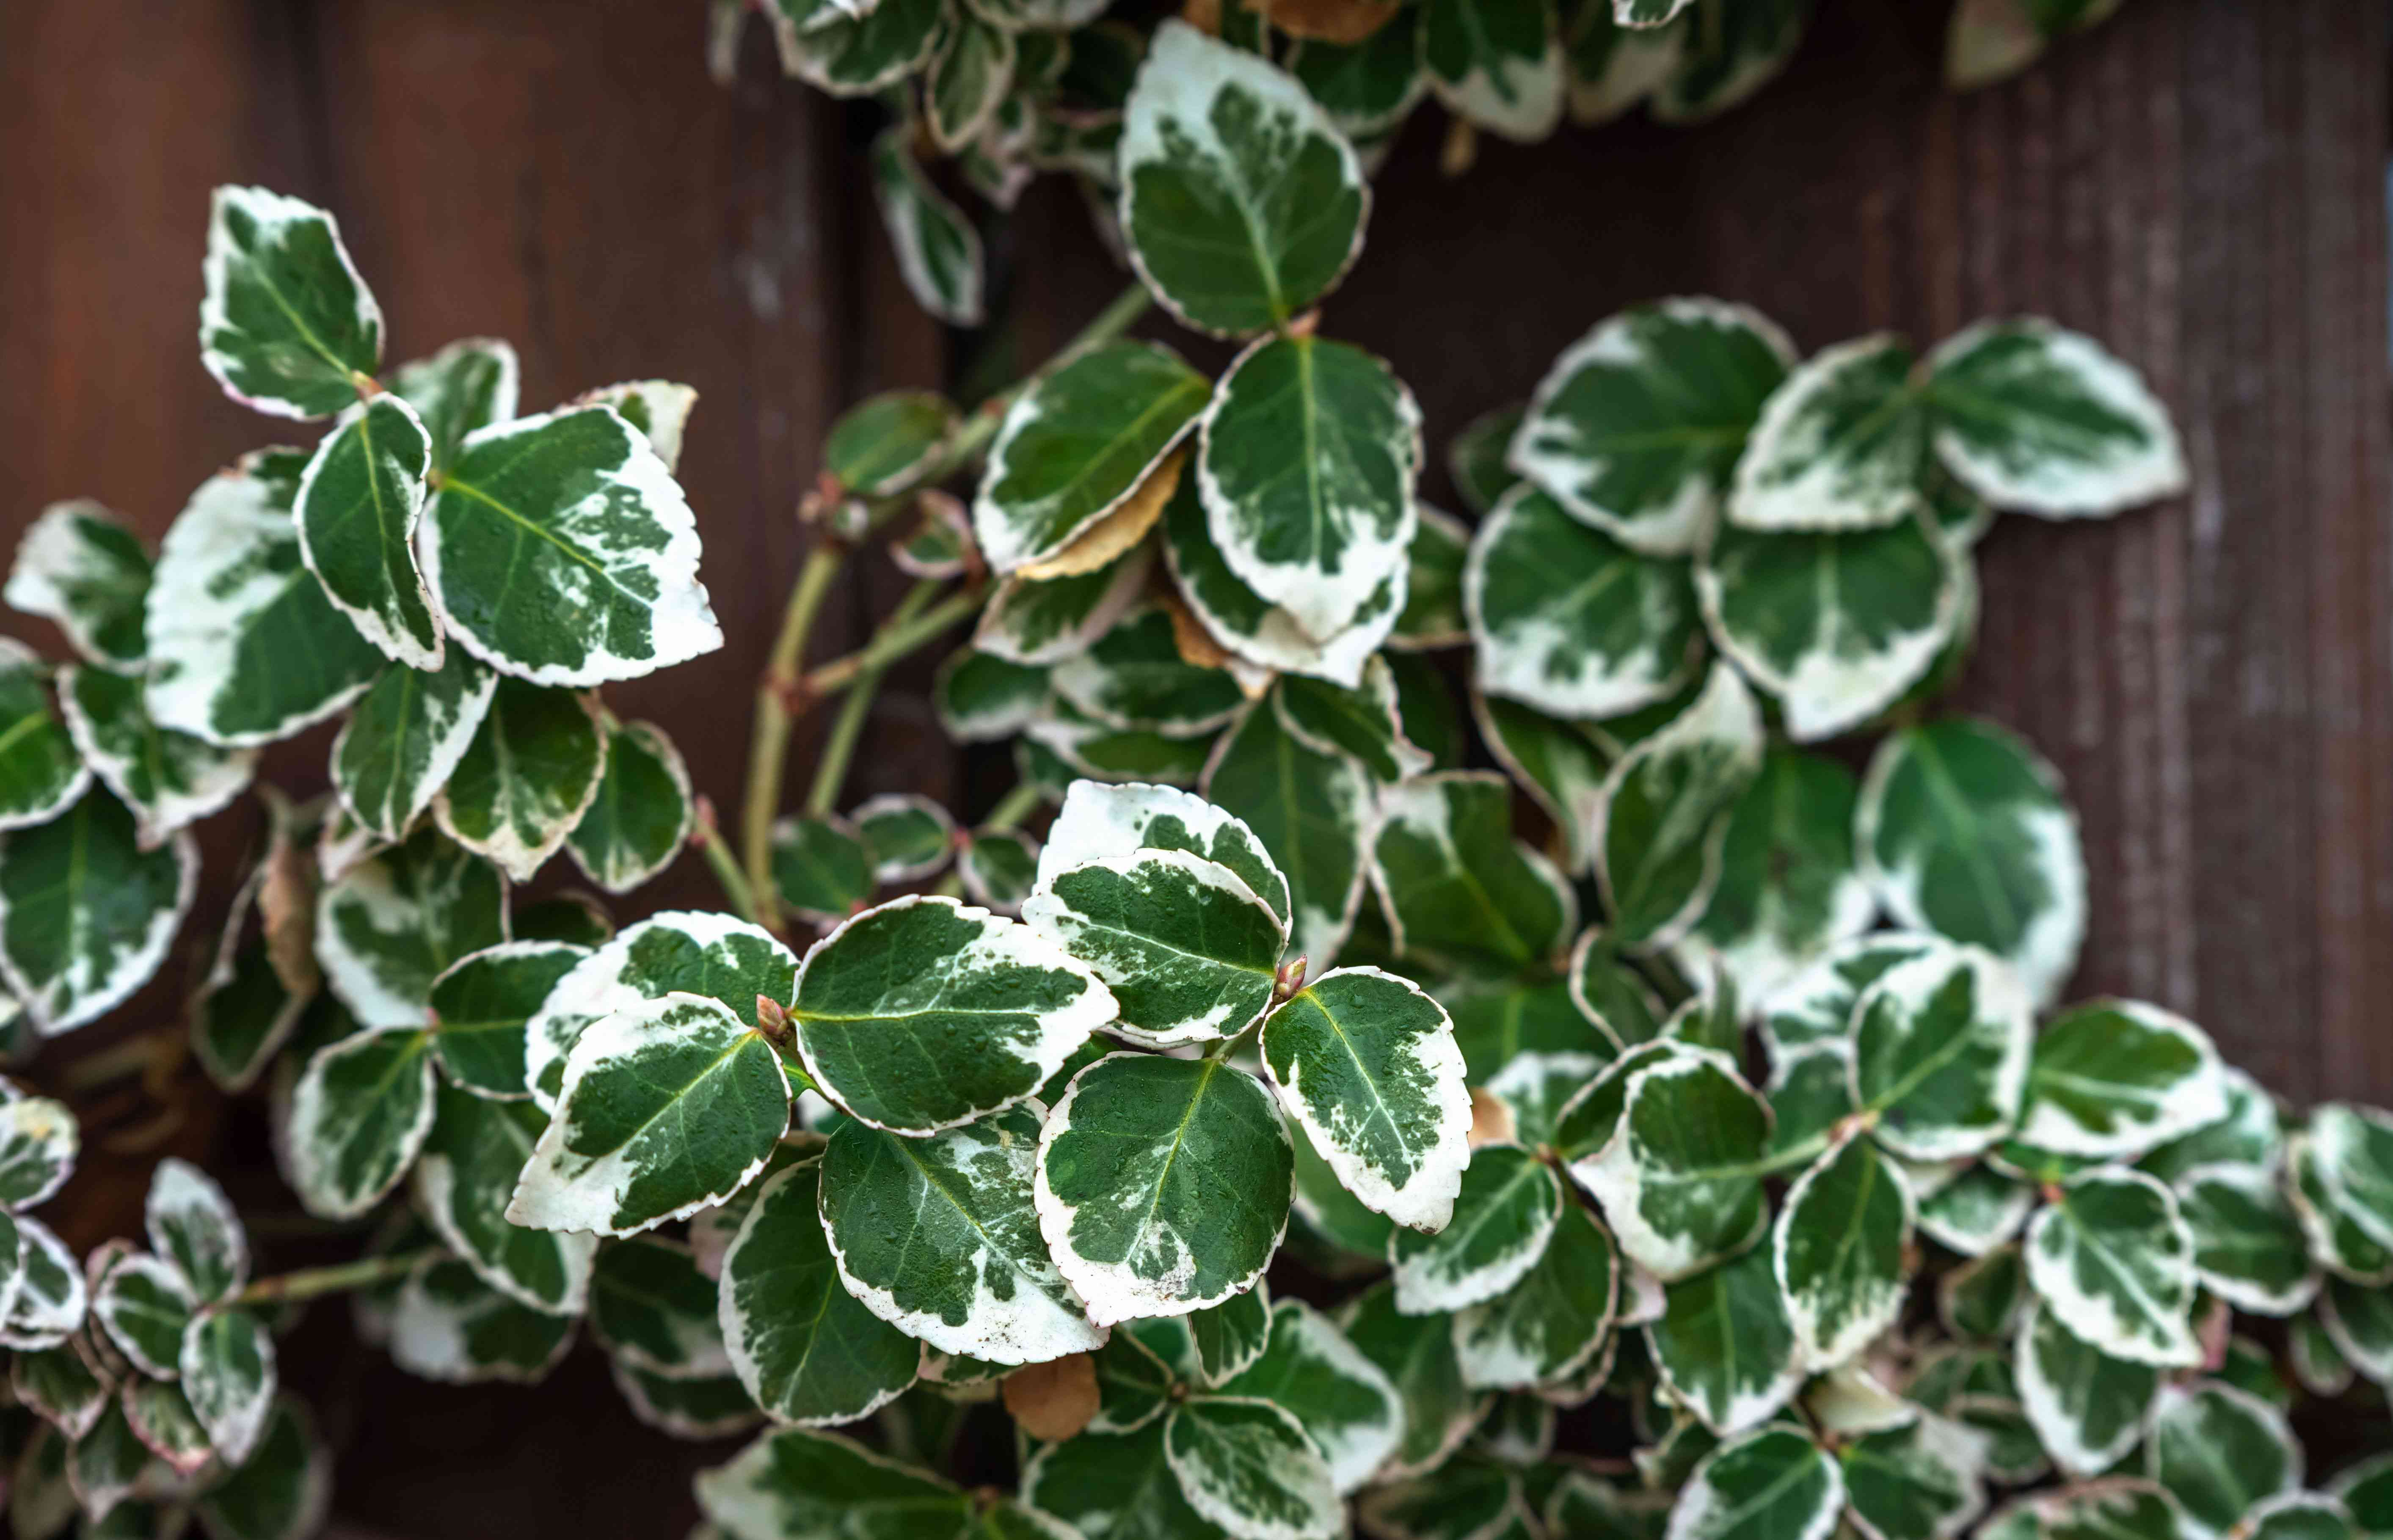 Emerald gaiety shrub with green and white leaves growing as vine